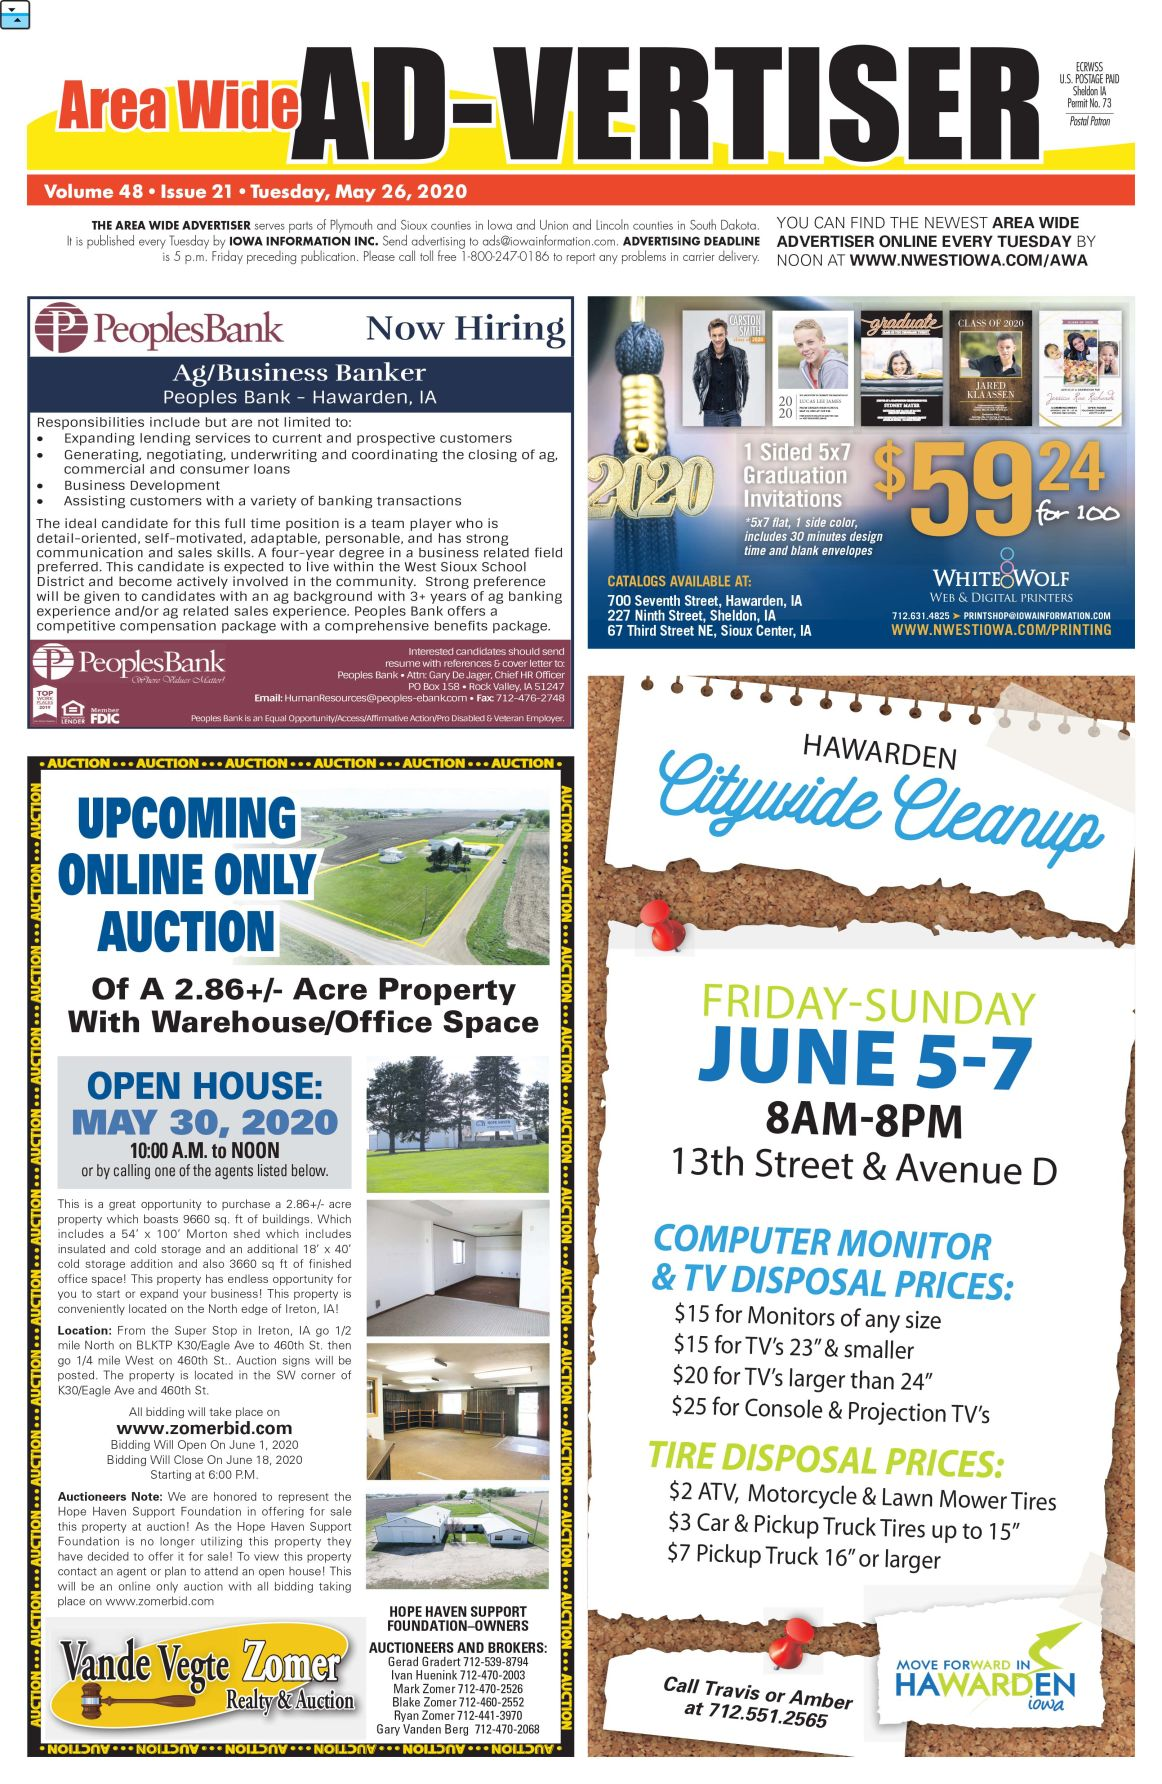 Area Wide Ad-vertiser: May 26, 2020